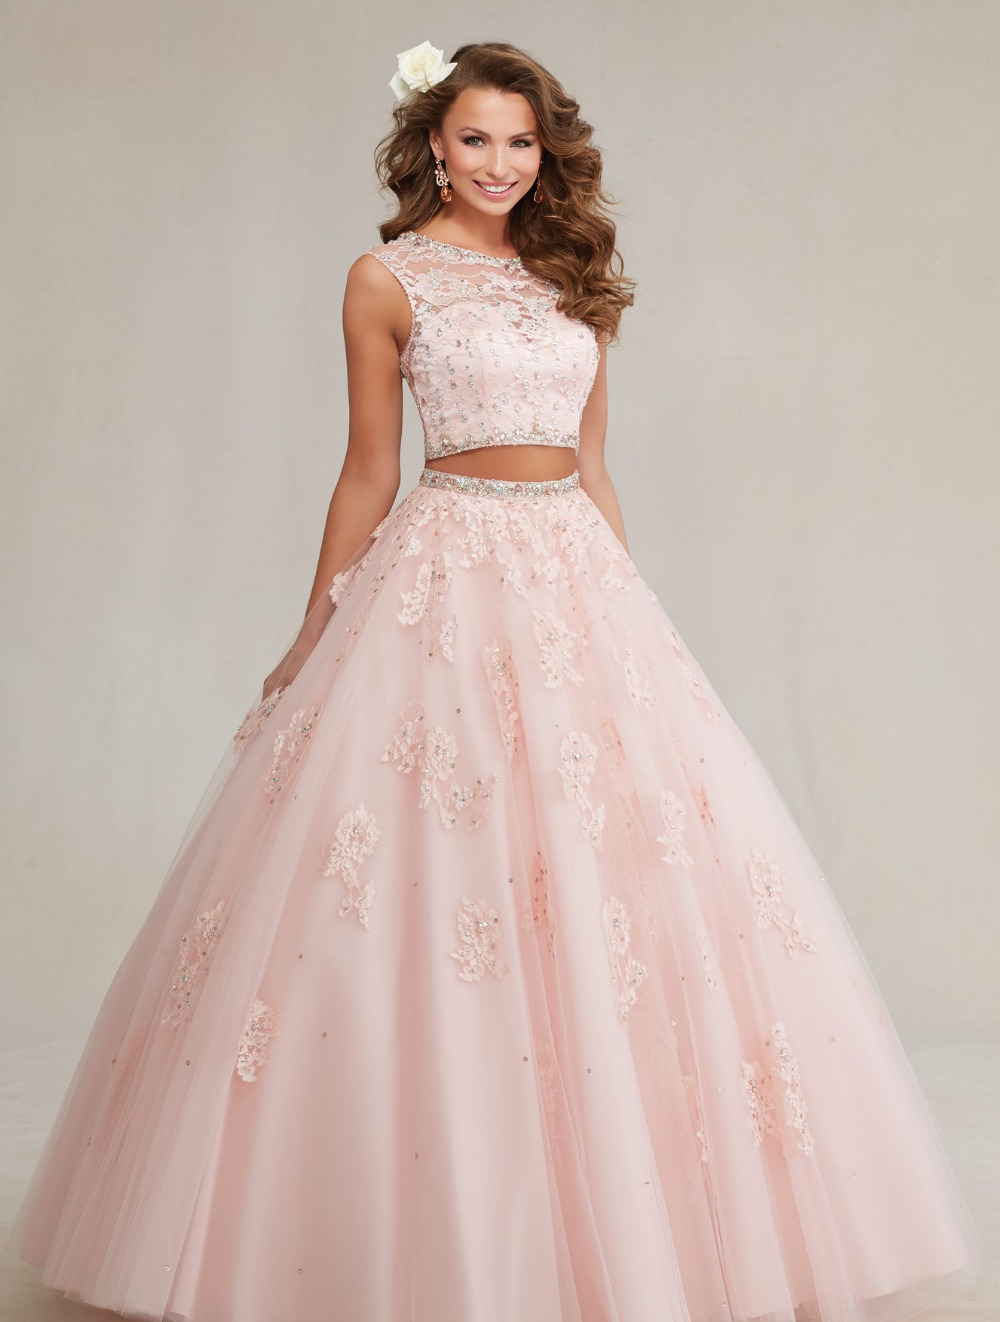 2017 New Arrival 2 Pieces Ball Gown Pink